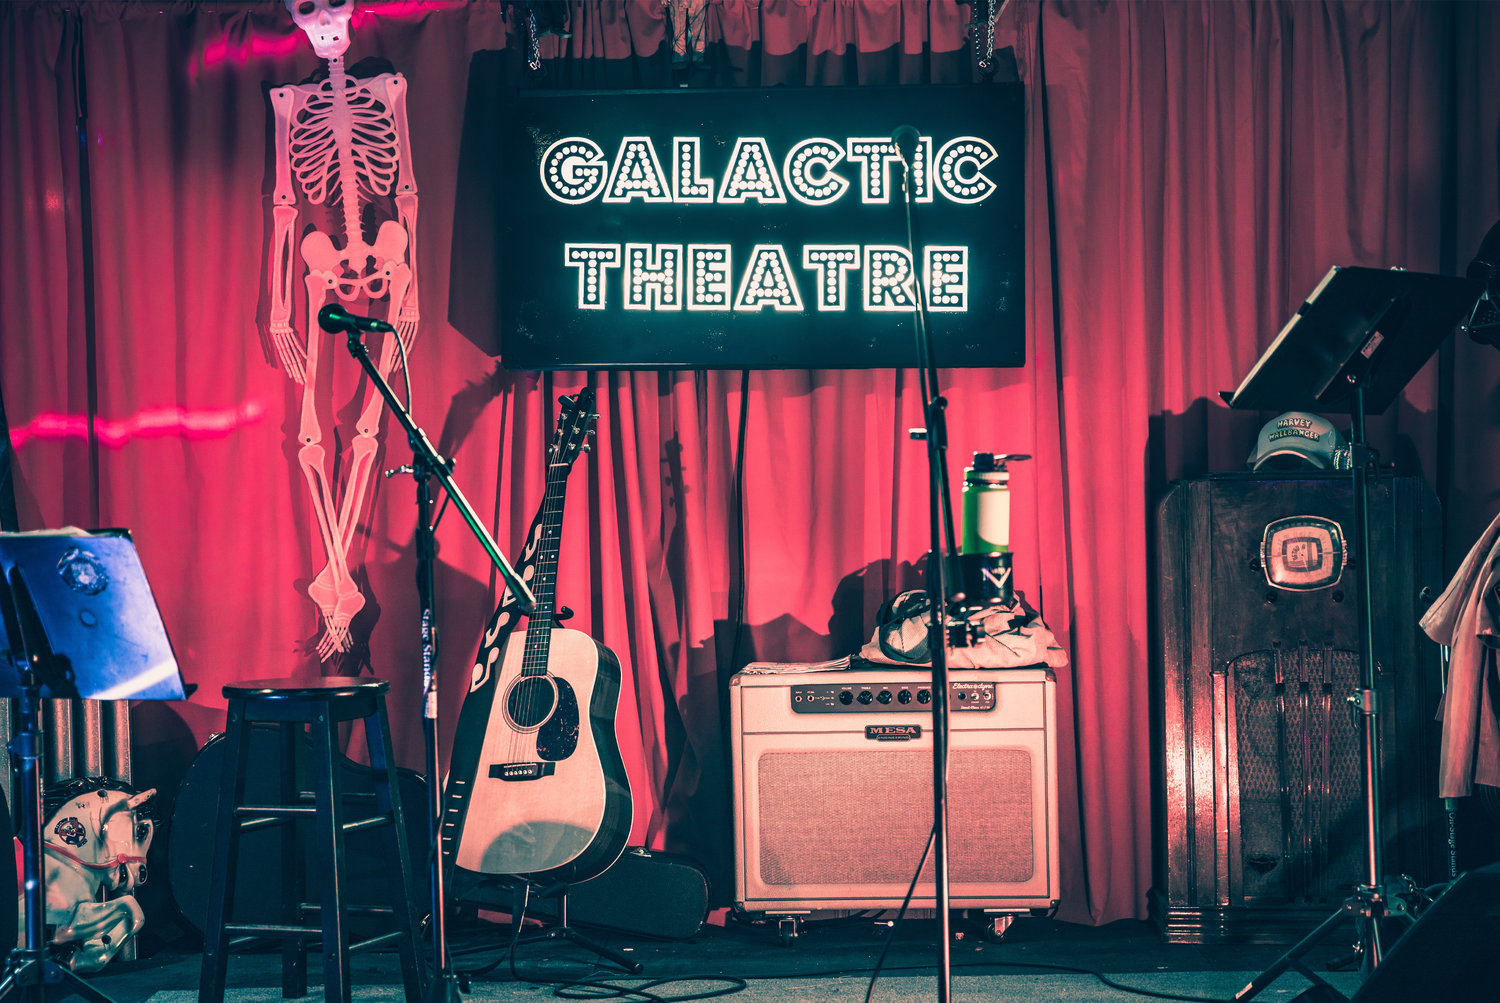 The Galactic Theatre